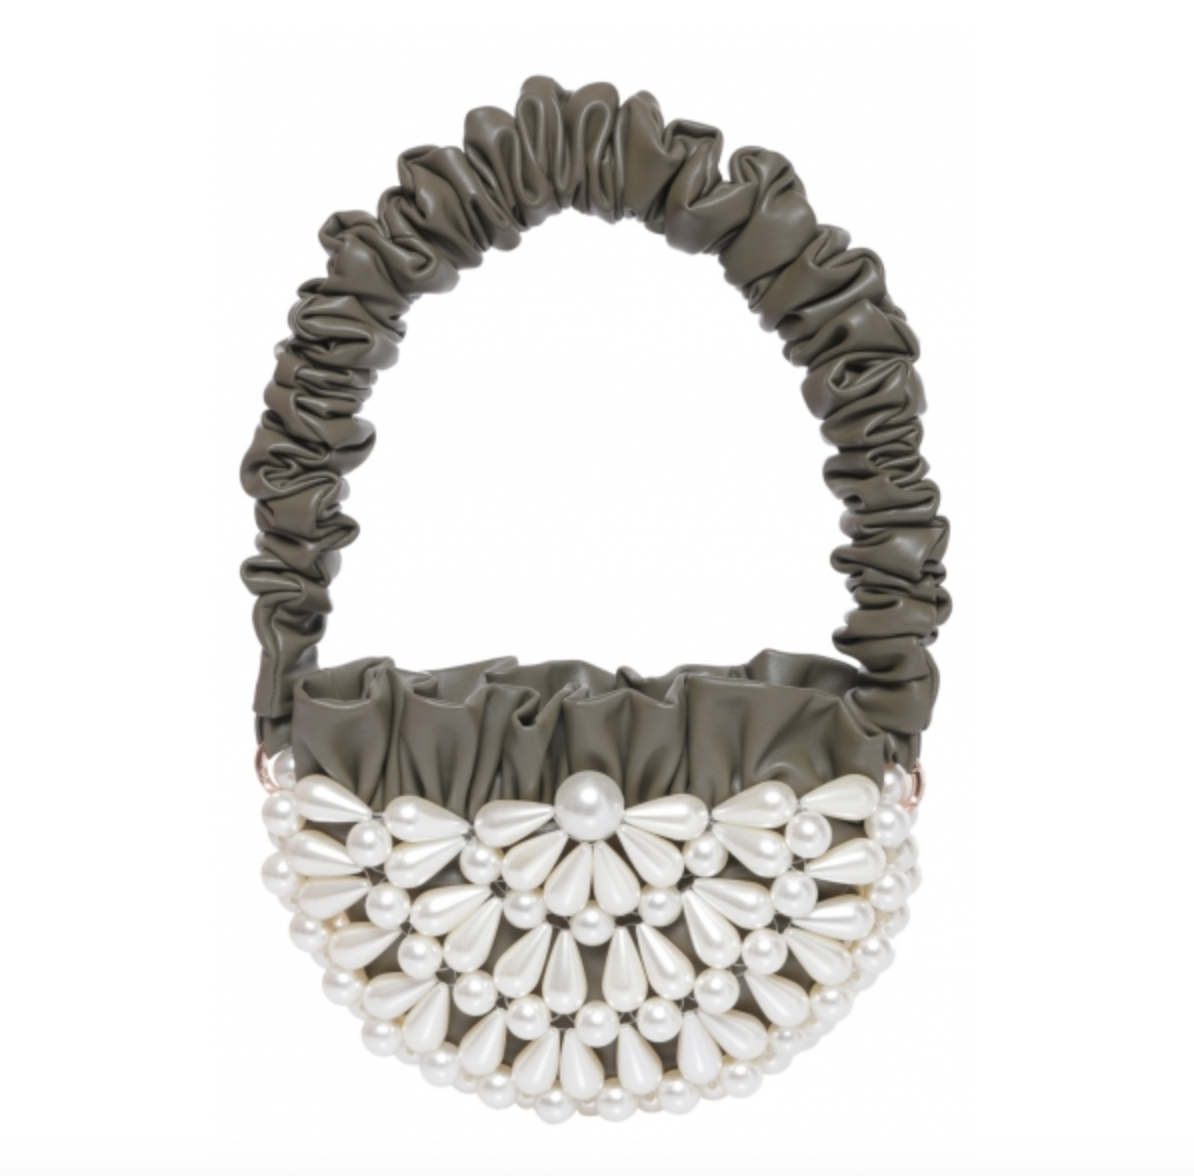 Solange Semi-round Pearl Embellished Baguette Bag Khaki Green by 0711 Tbilisi on curated-crowd.com